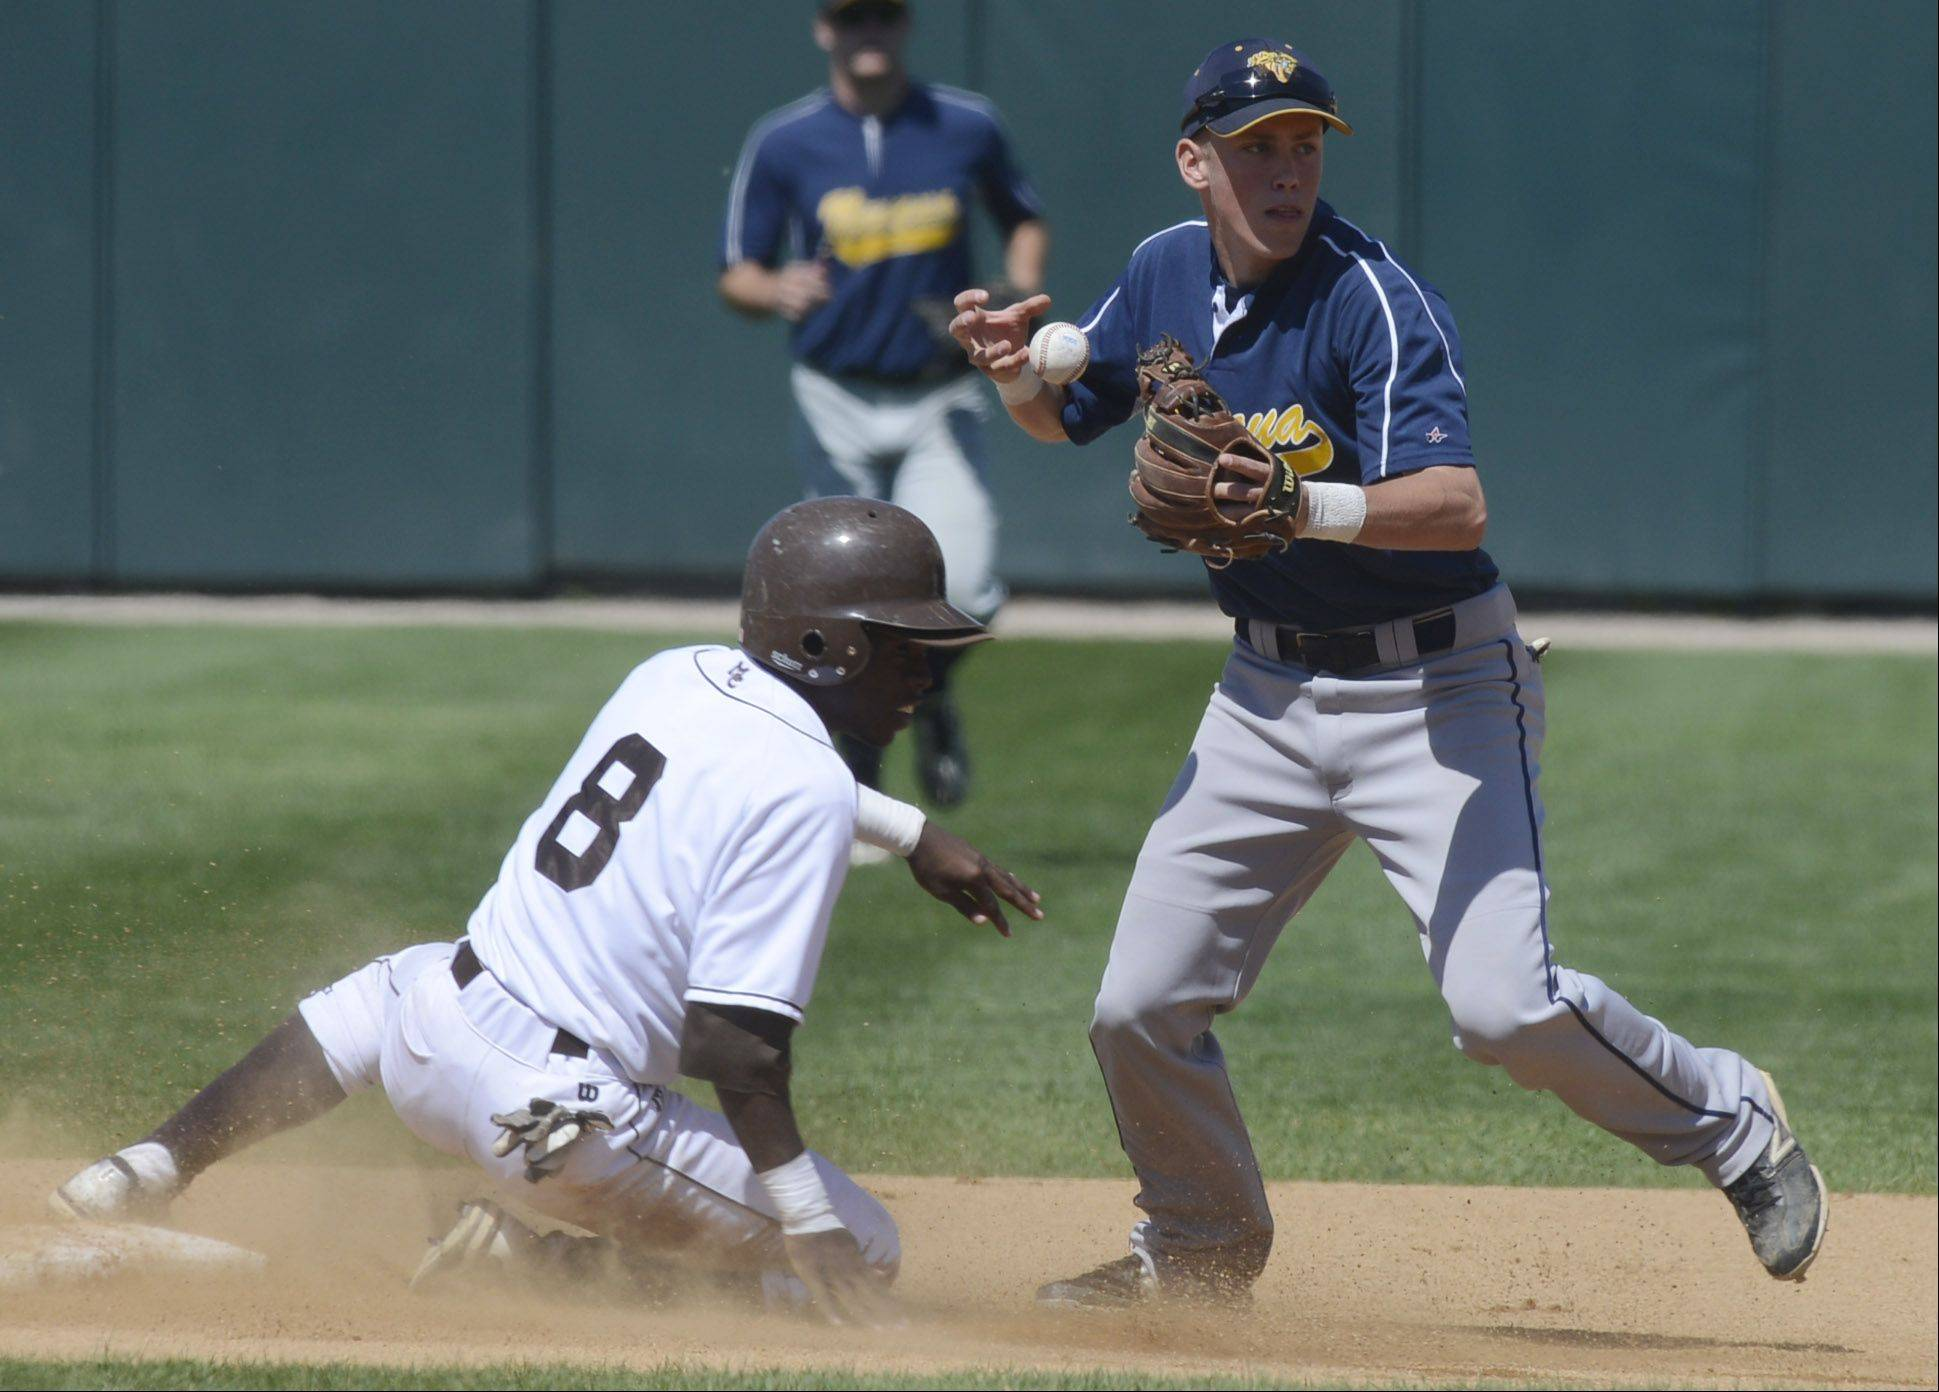 Neuqua Valley shortstop Matt Wollnik looks toward first after forcing Mt. Carmel's Ako Thomas at second during the Class 4A state baseball semifinals at Silver Cross Field in Joliet Friday.